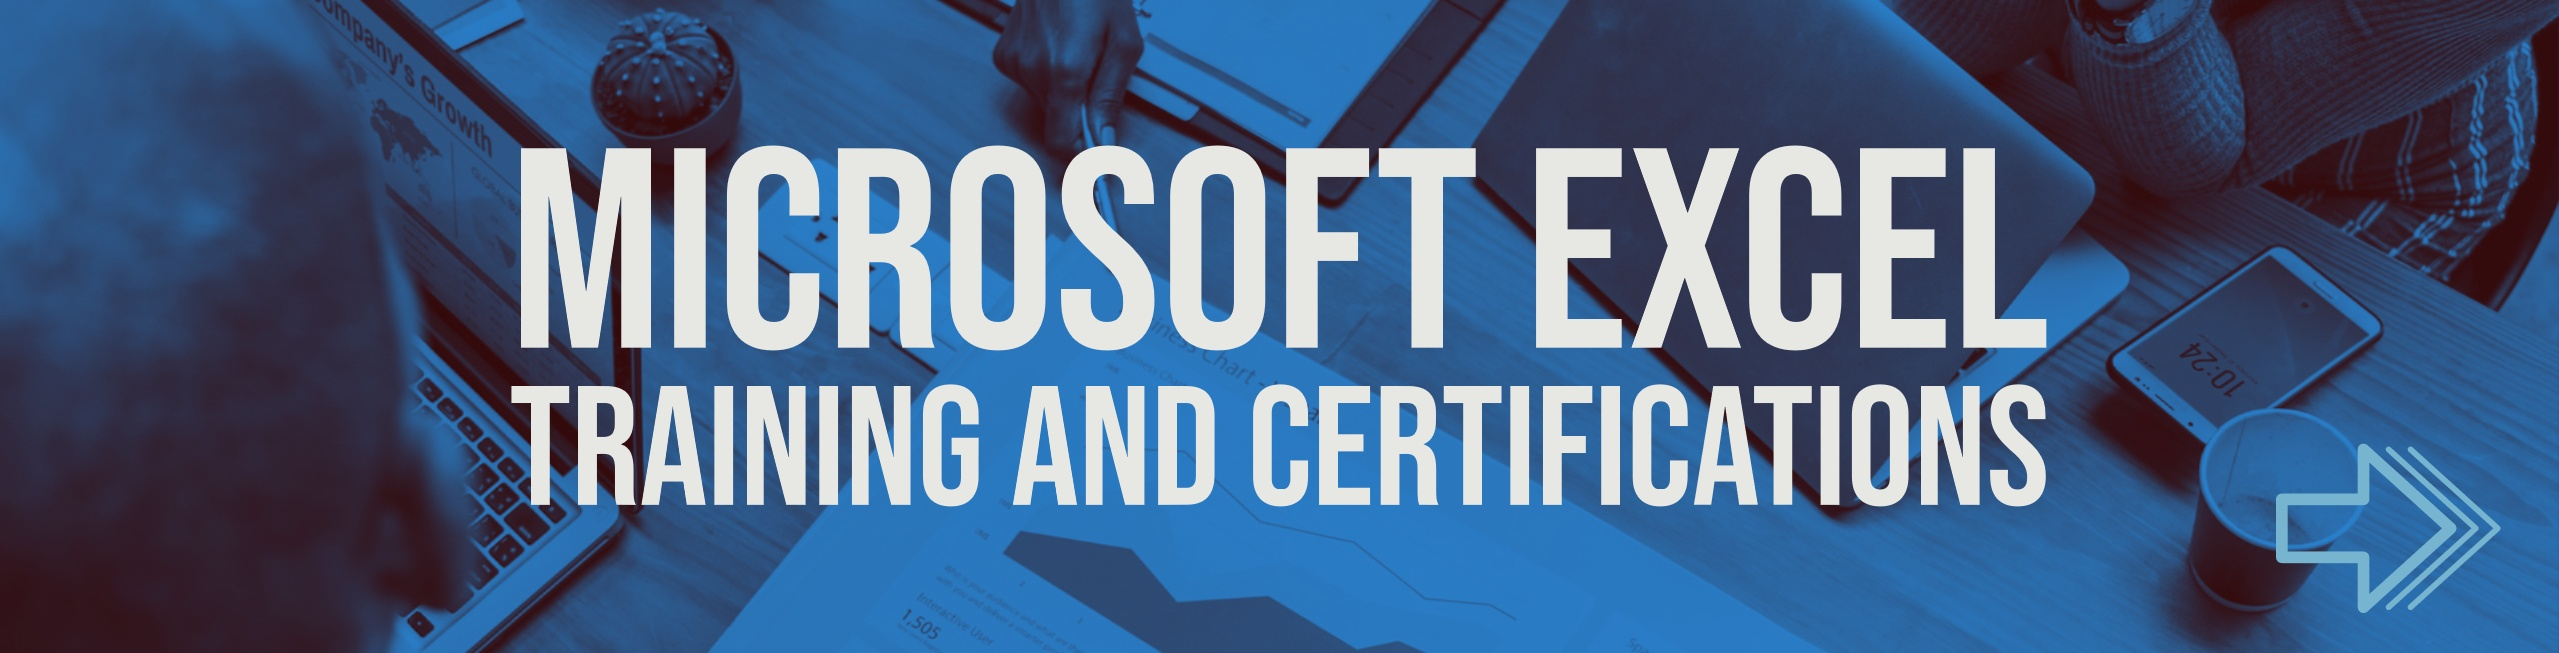 New Horizons Computer Learning Centers Excel Training and Certification